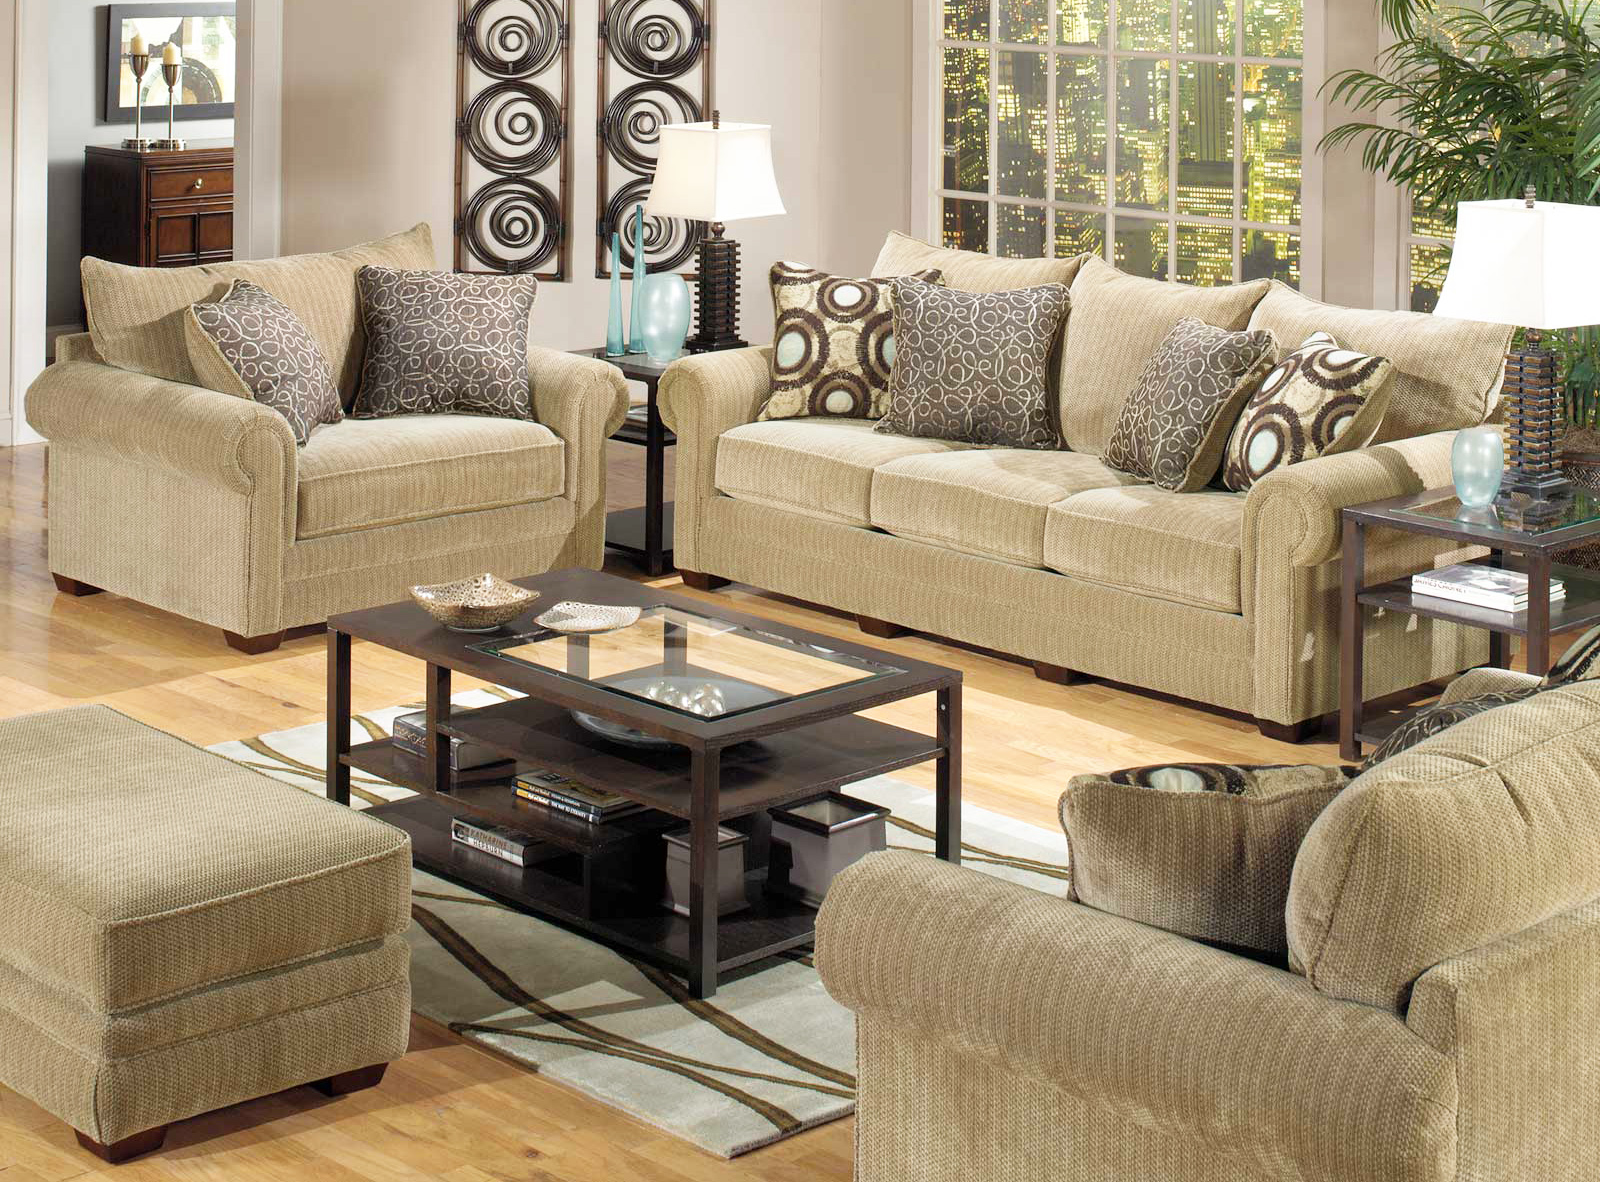 Three Furniture Arrangement Tips That Will Make Room Looks Bigger Roy Home Design